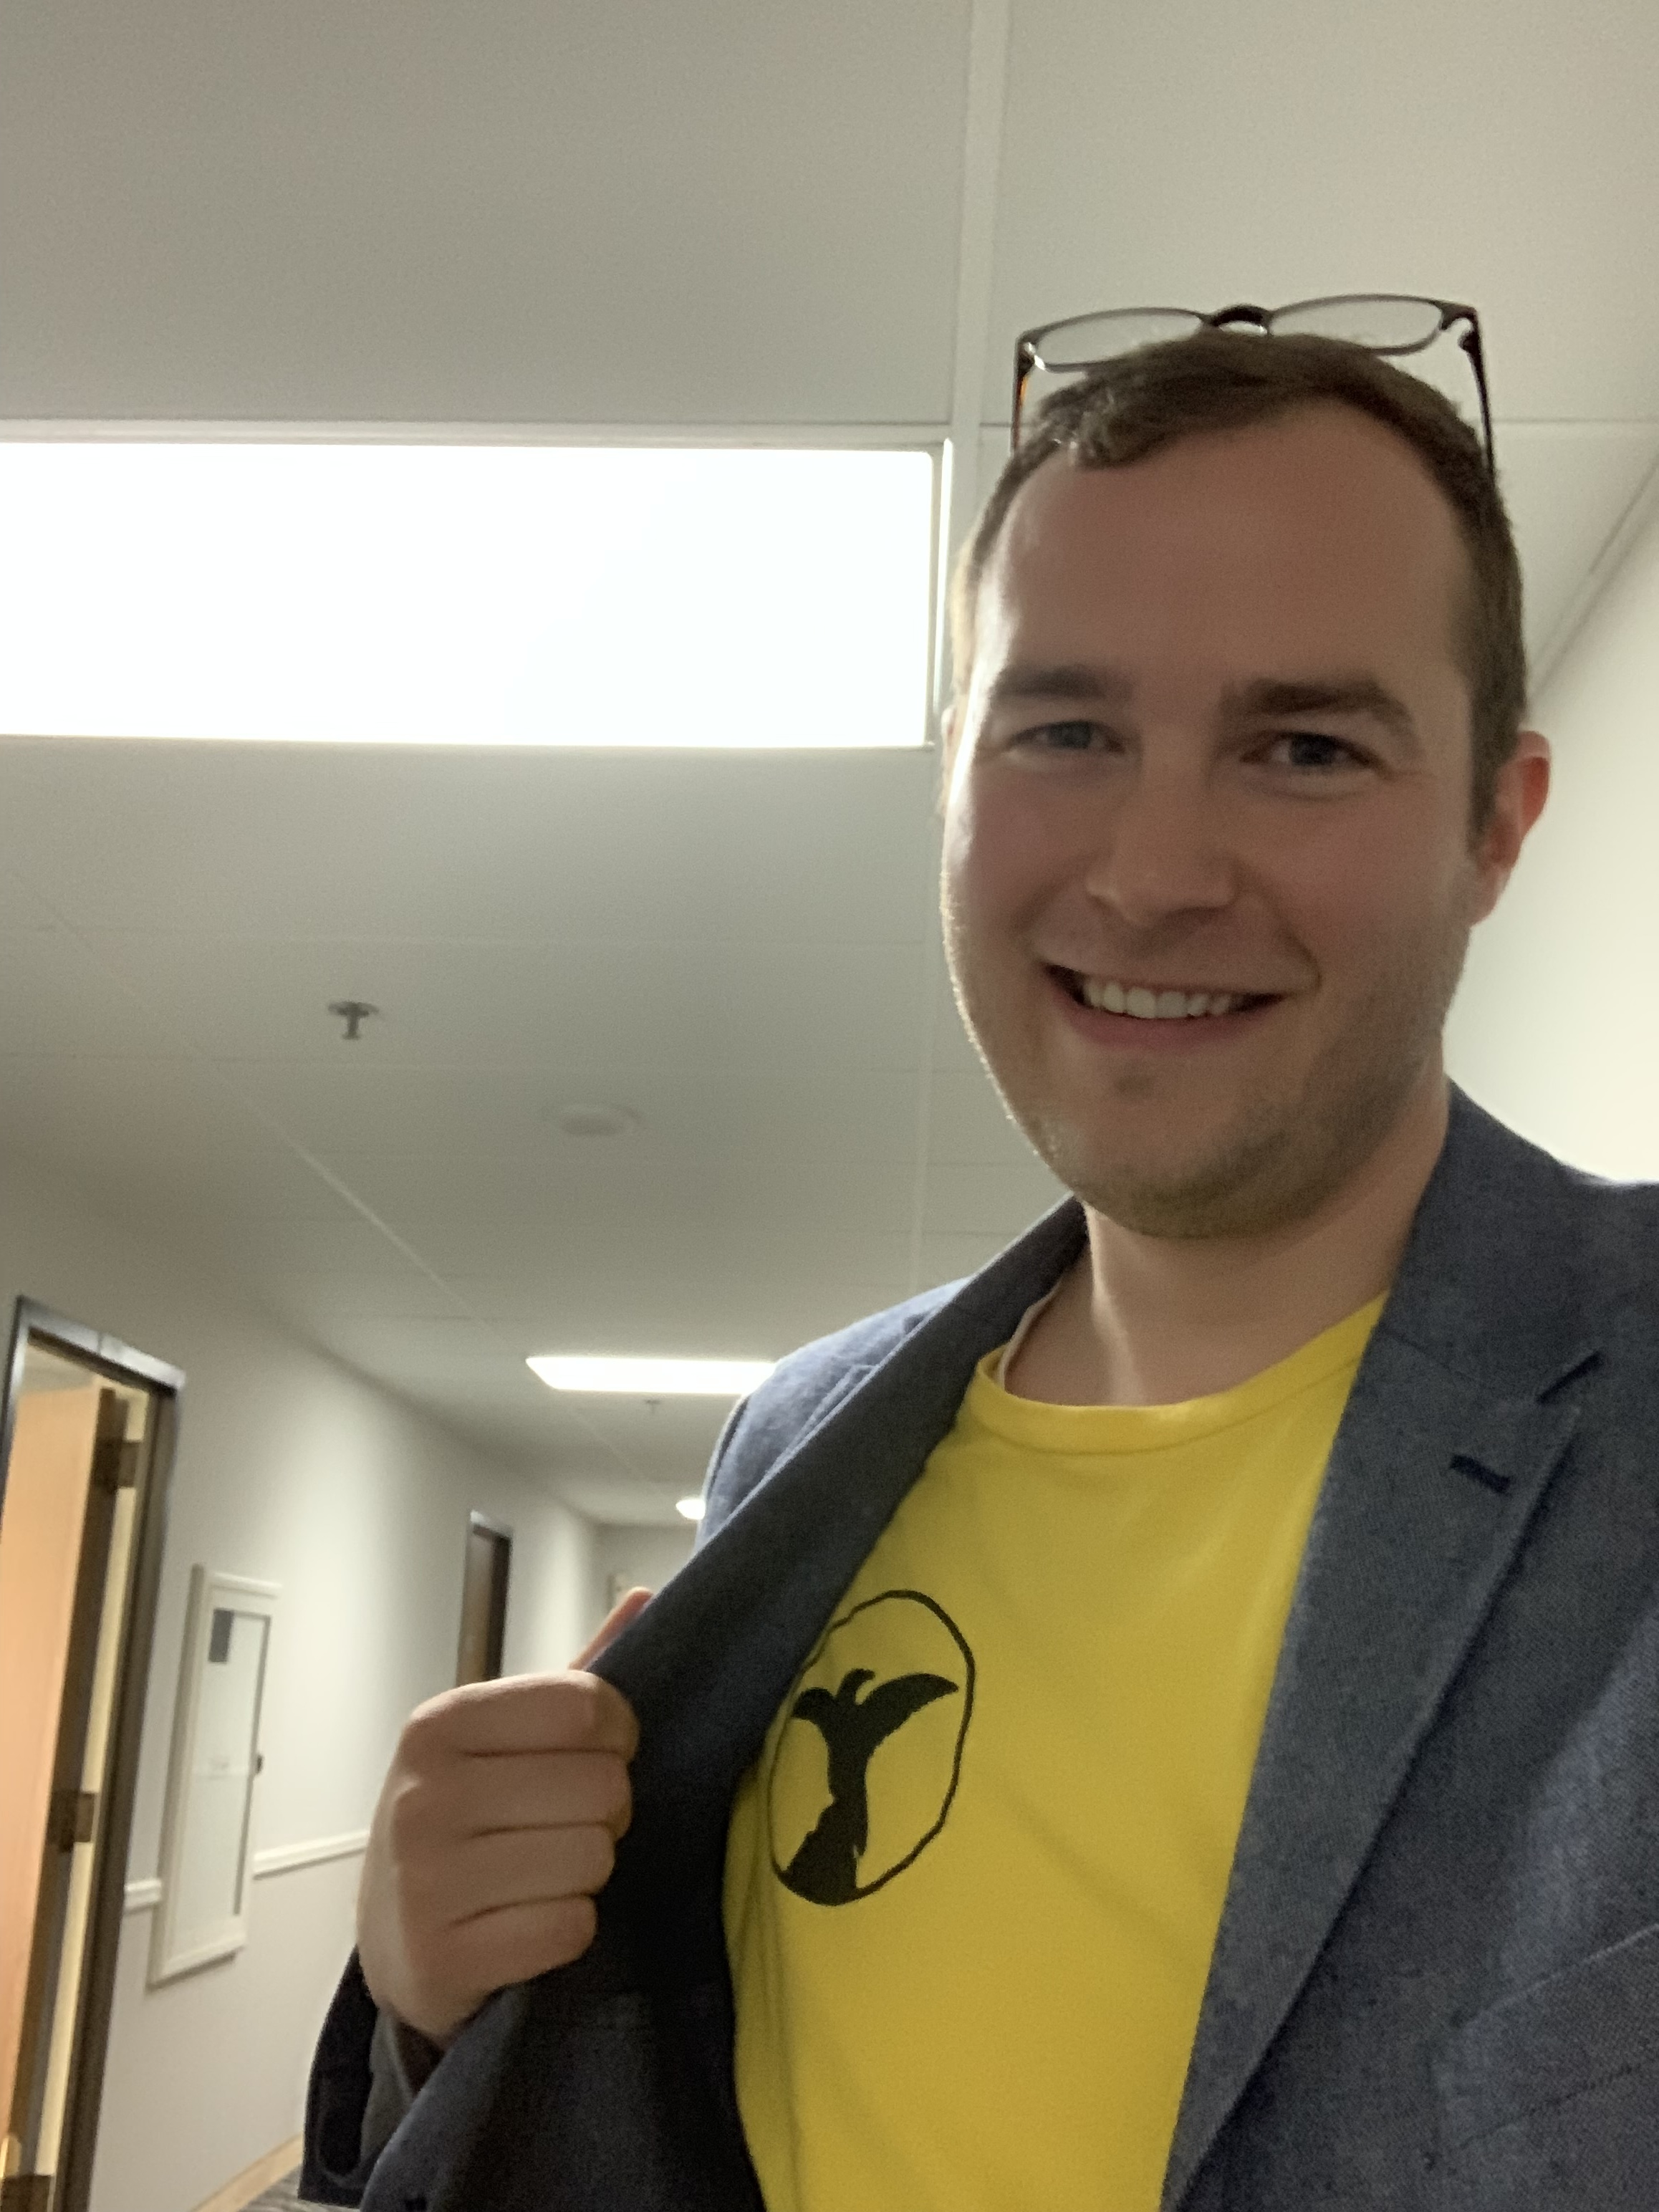 Jon wears his LA Times Guild shirt at the vote tally in solidarity with his colleagues on Tuesday.